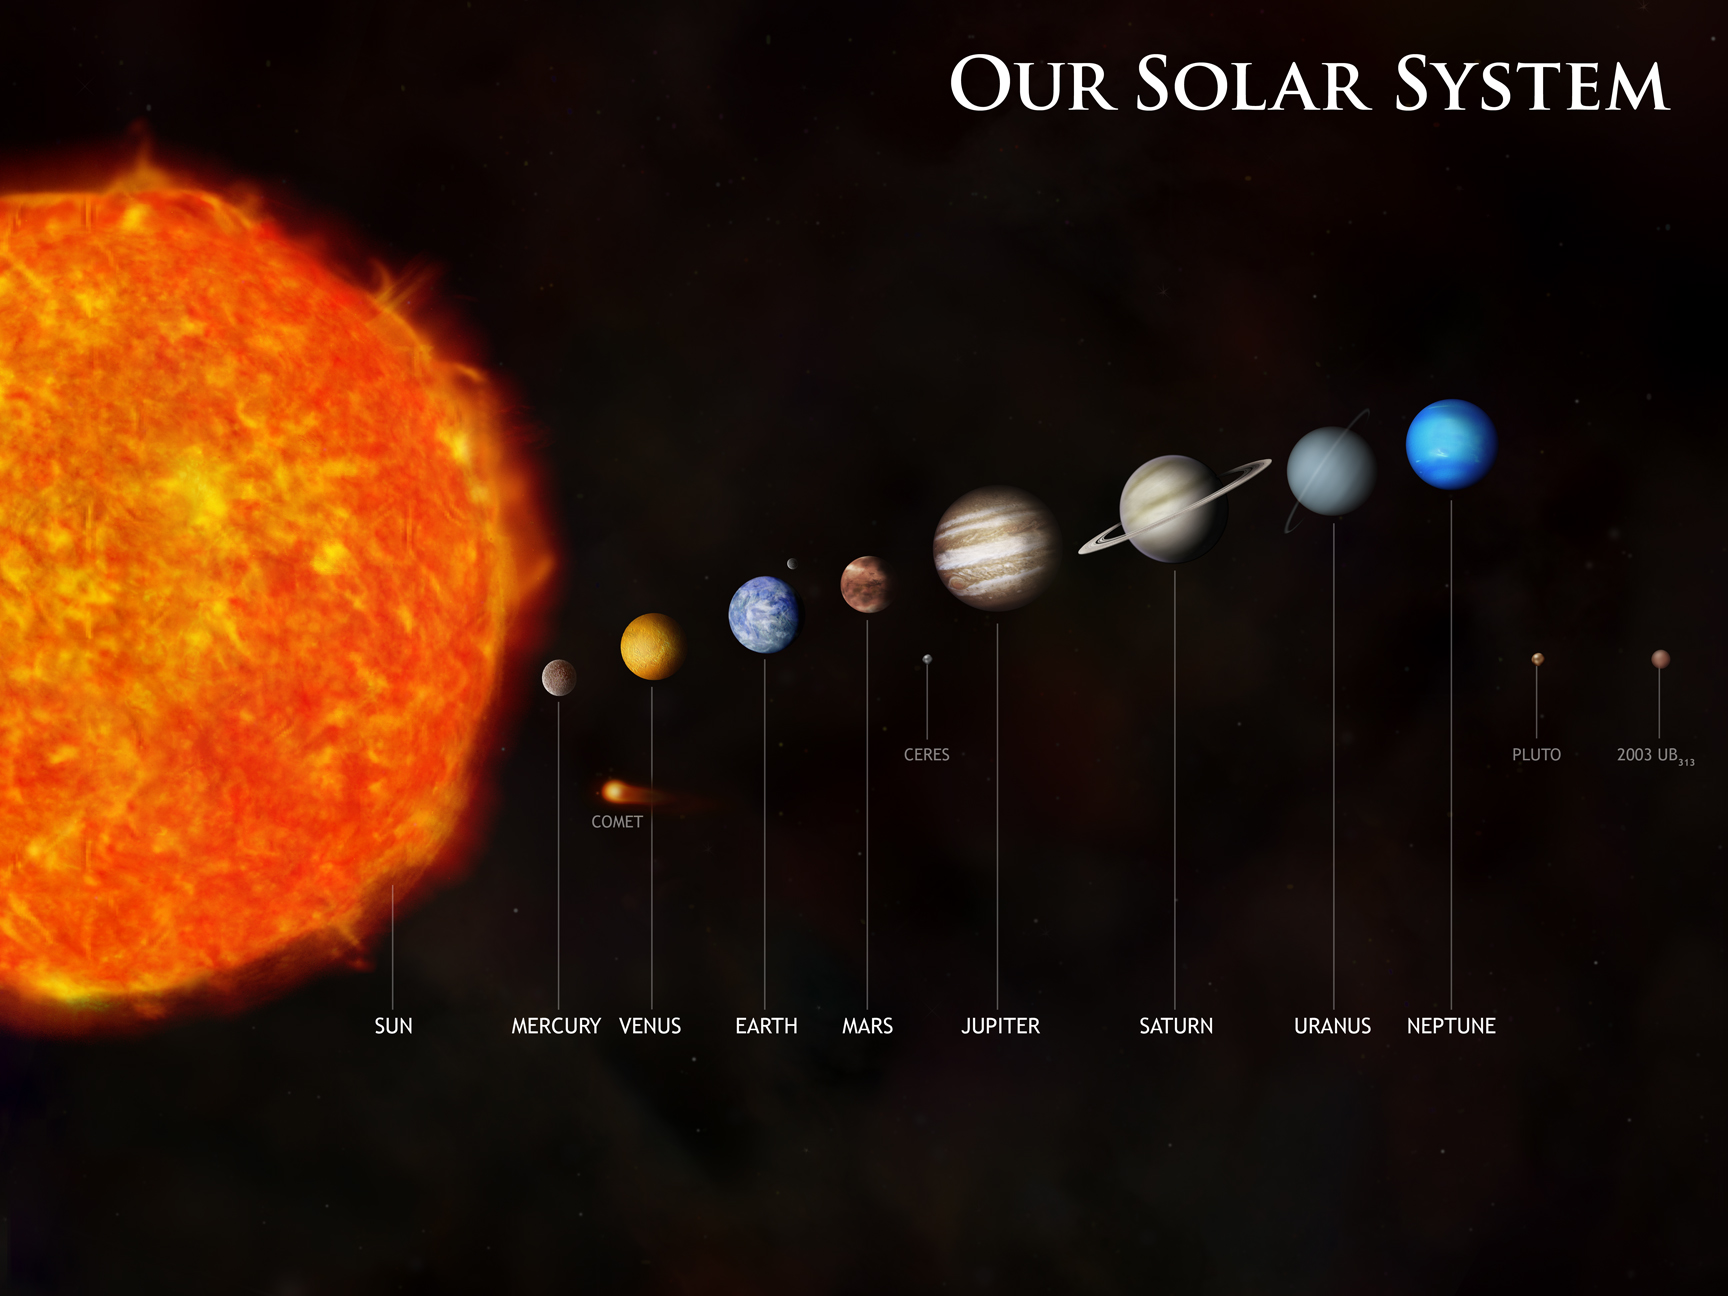 Chandra resources solar system illustrations solarsystemill ccuart Images